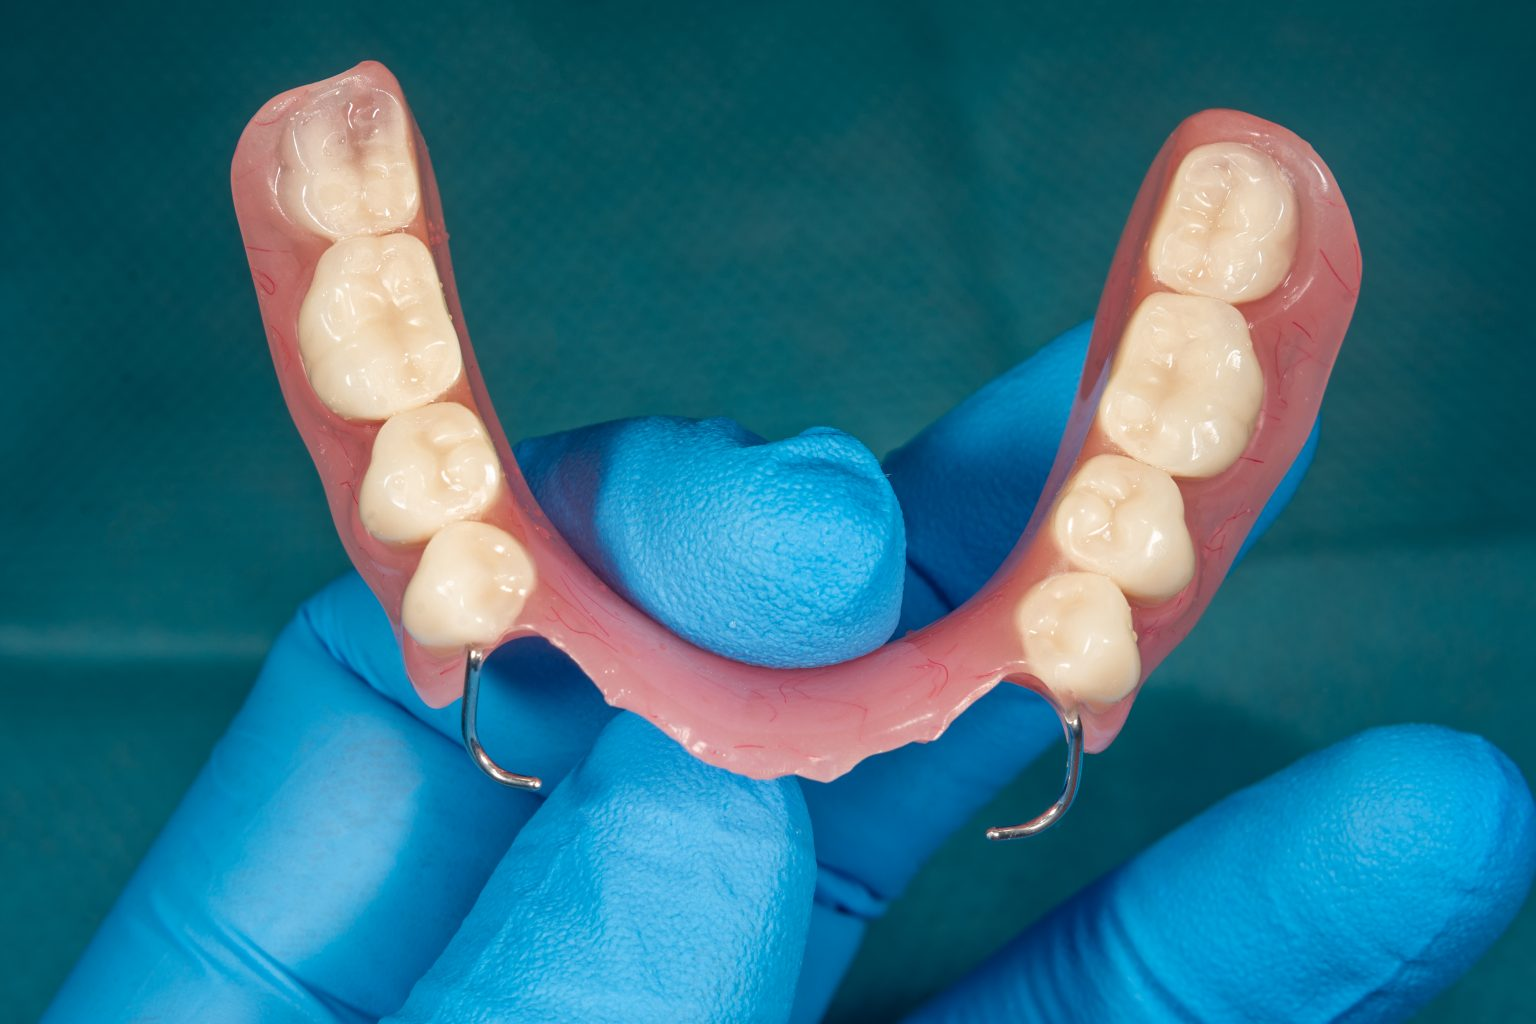 Close Up Human Denture Of The Upper Jaw On A Blue Background In The Hand Of Dentist Wearing A Medical A Glove